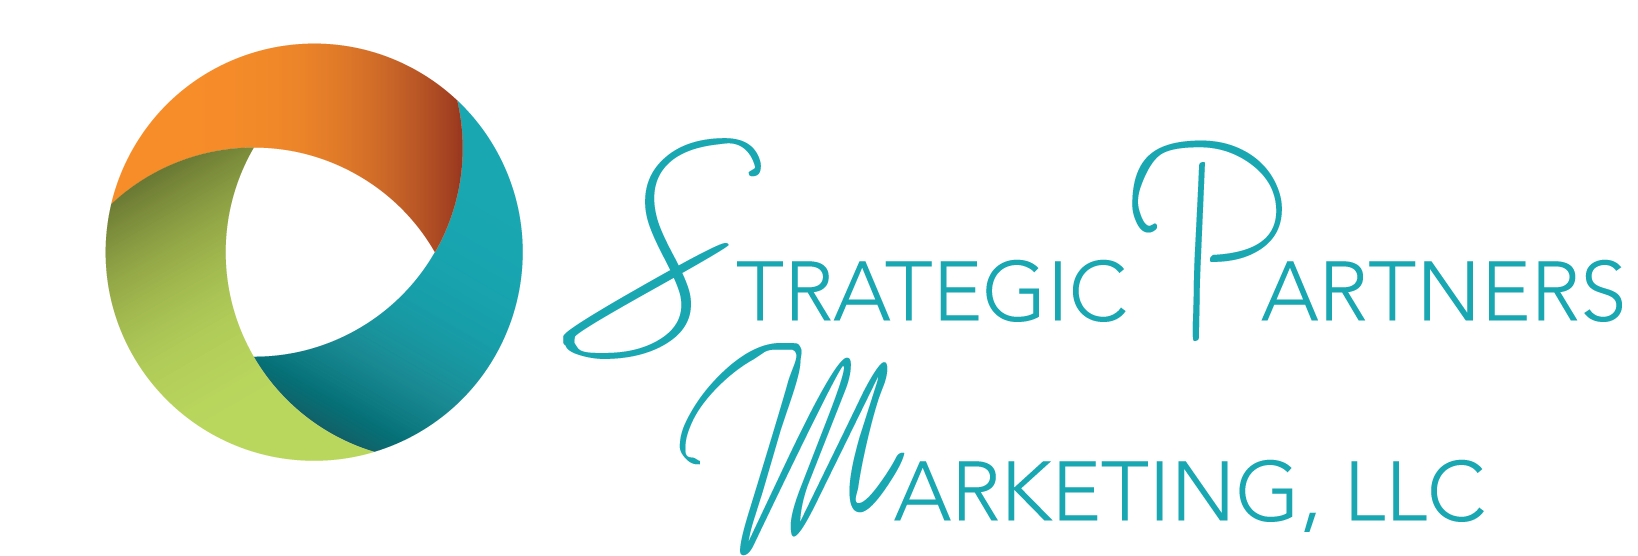 Sponsor - Strategic Partners Marketing, LLC